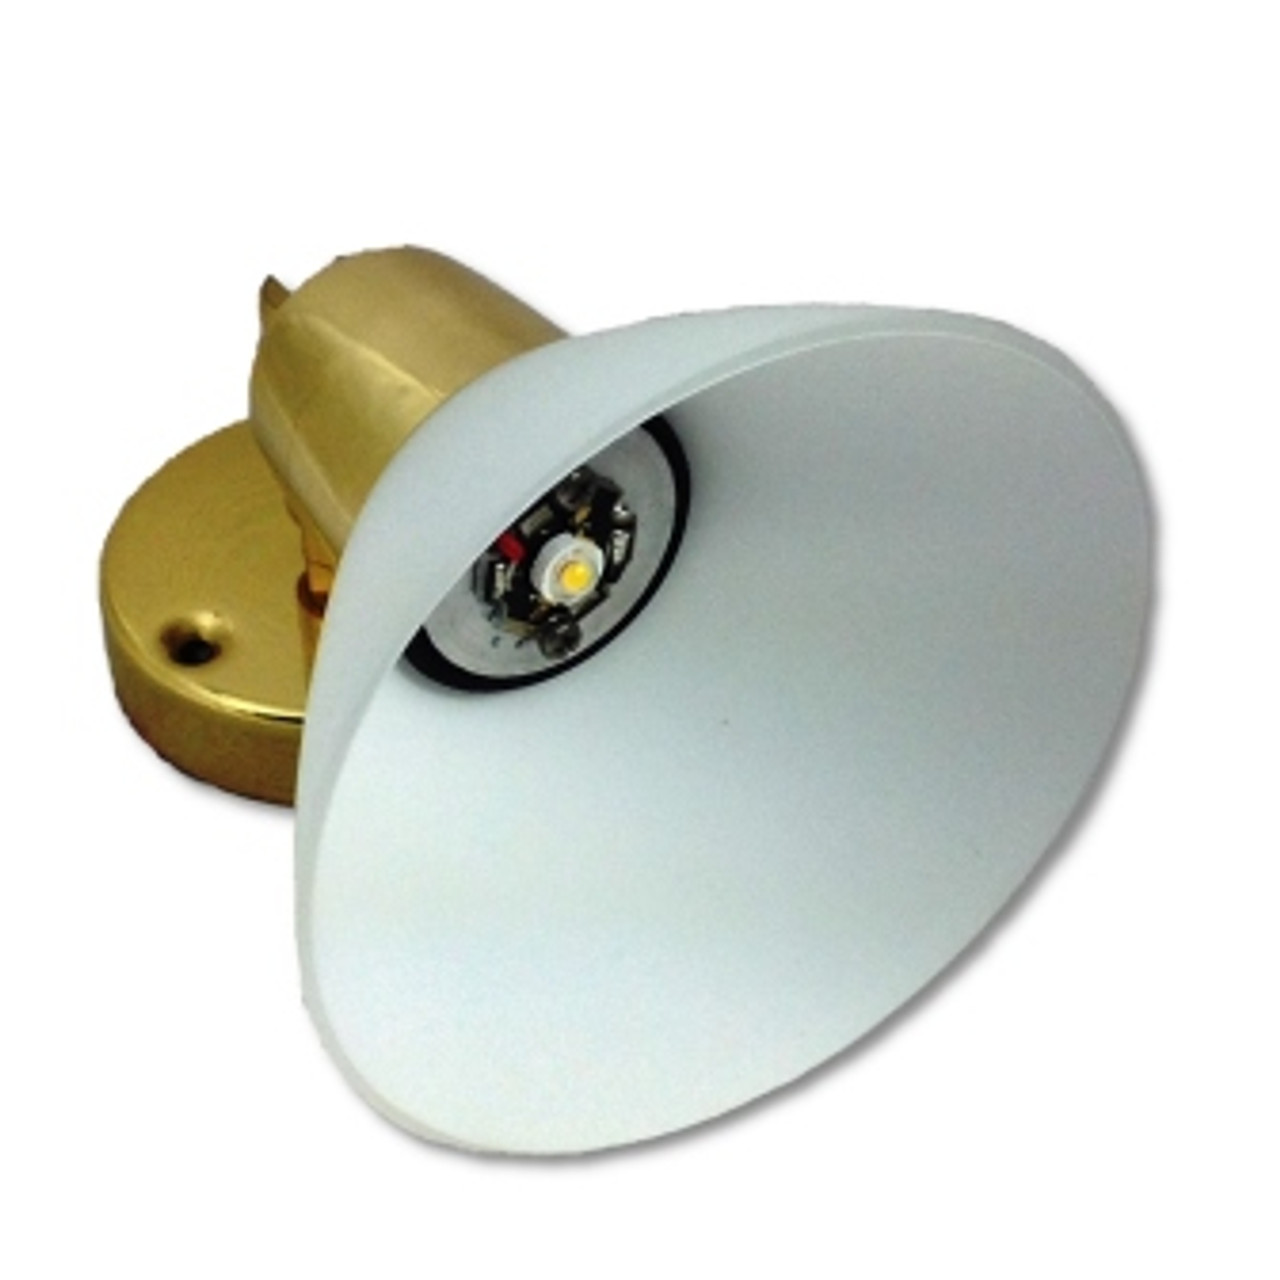 LED Reading Light with Frosted Glass Shade